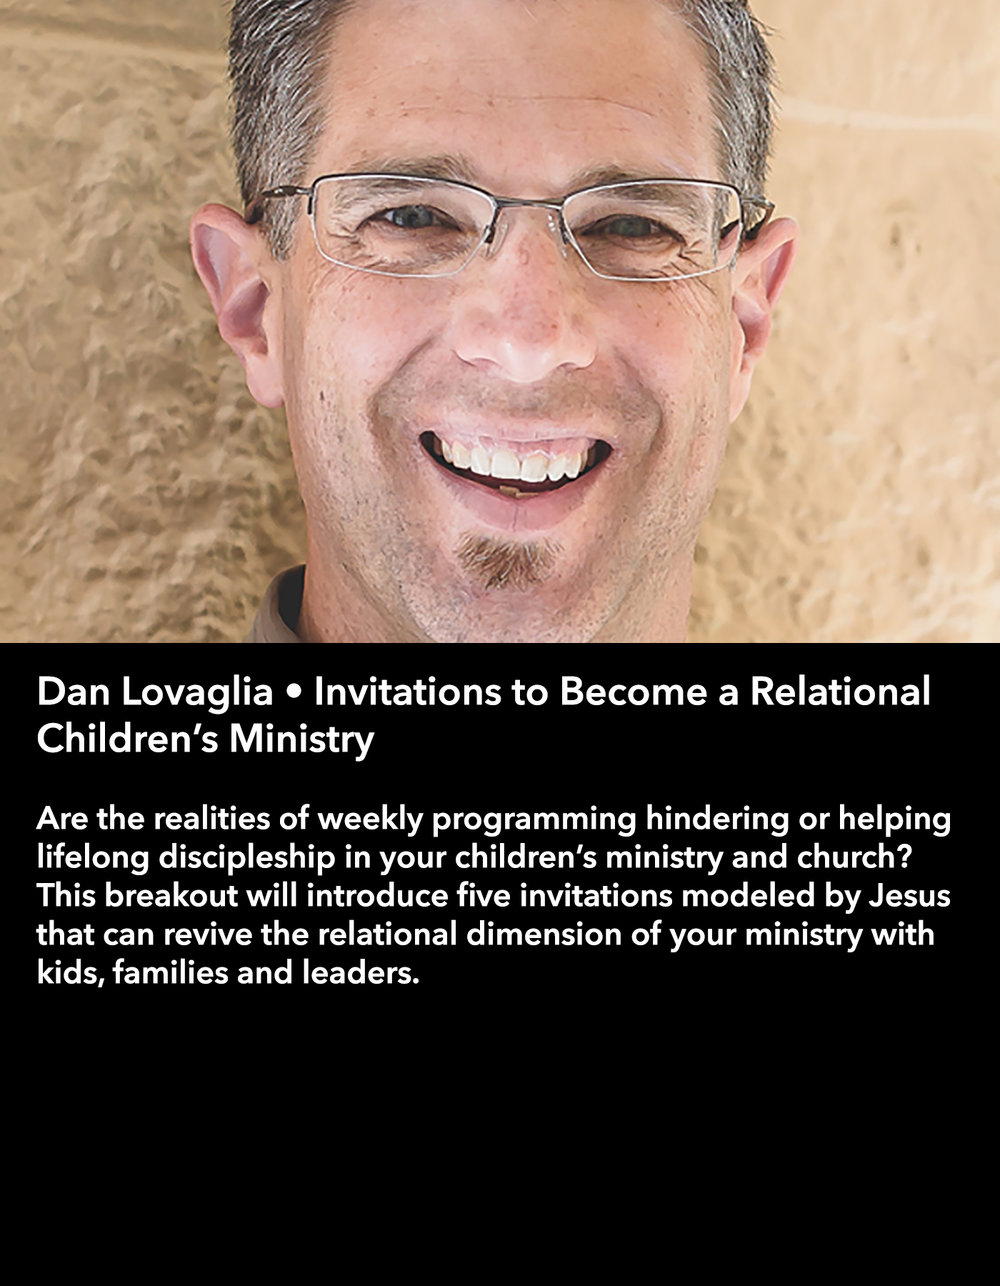 Dan Lovaglia • Invitations to Become a Relational Children's Ministry • Friday Night, March 17 • 8:30 – 9:45 pm